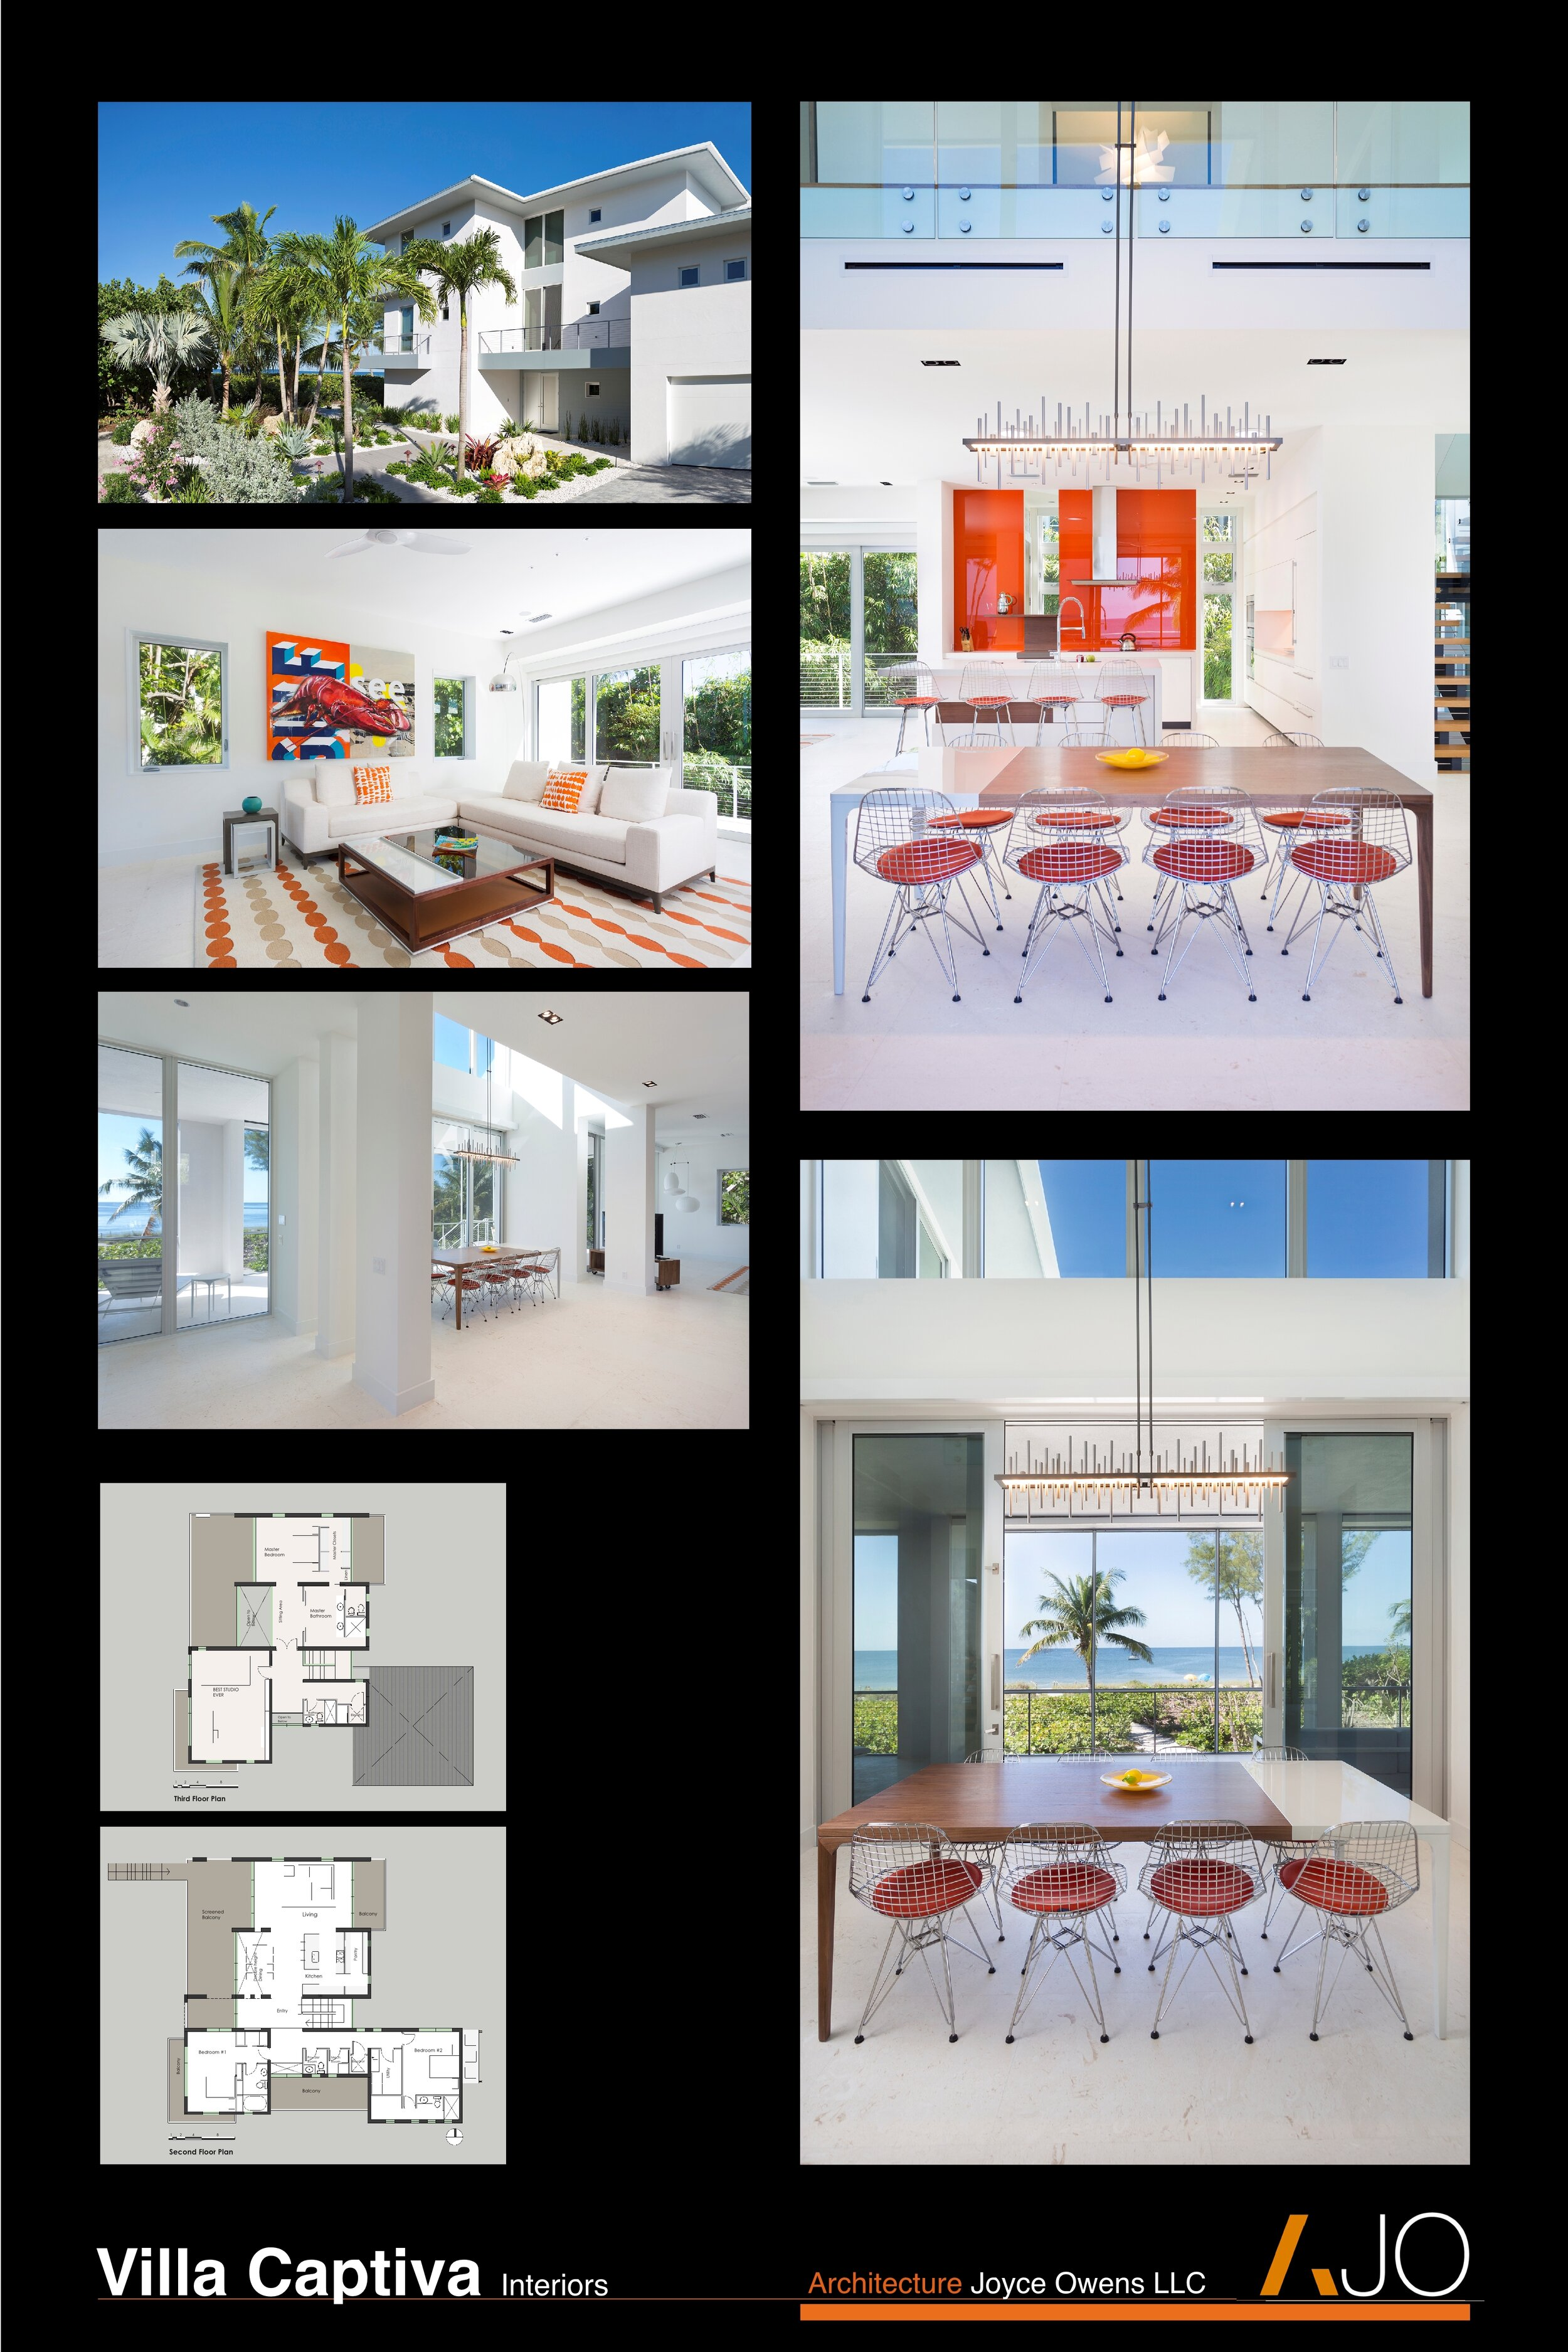 Architecture Joyce Owens Honored For Modern Captiva Home Designs Architecture Joyce Owens Llc